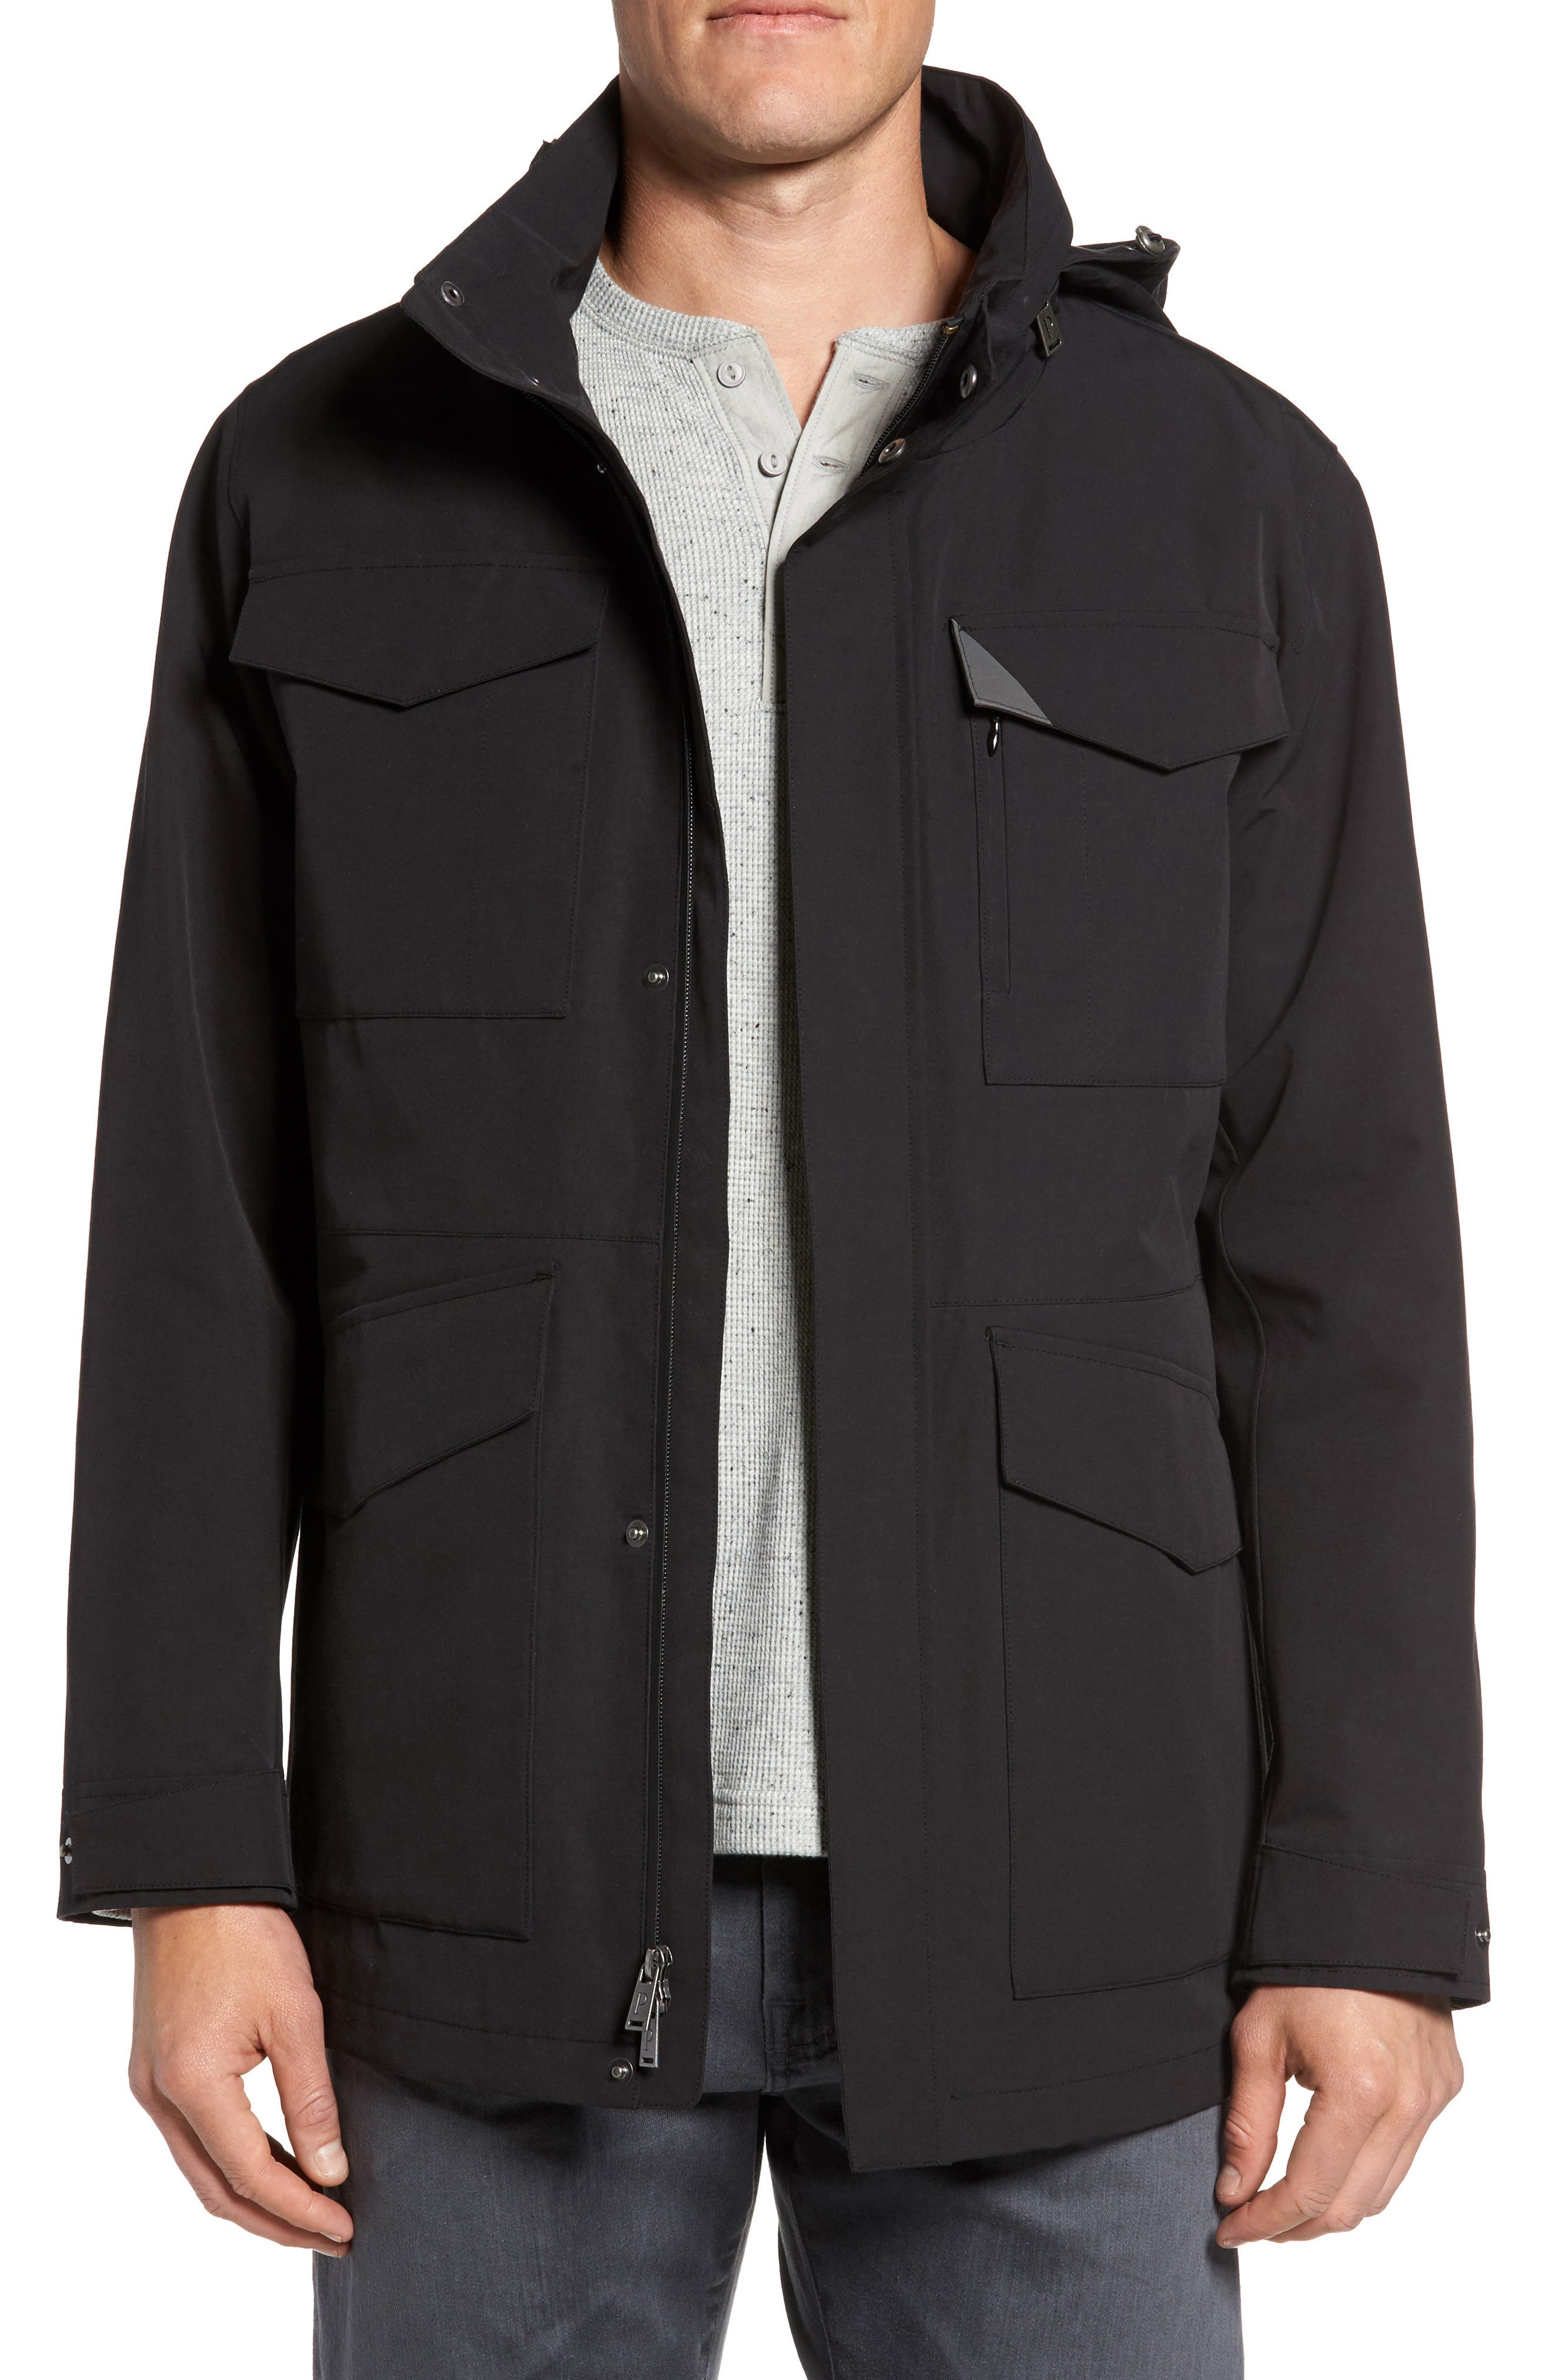 Clyde Hill Waterproof Field Jacket,                             Main thumbnail 1, color,                             001